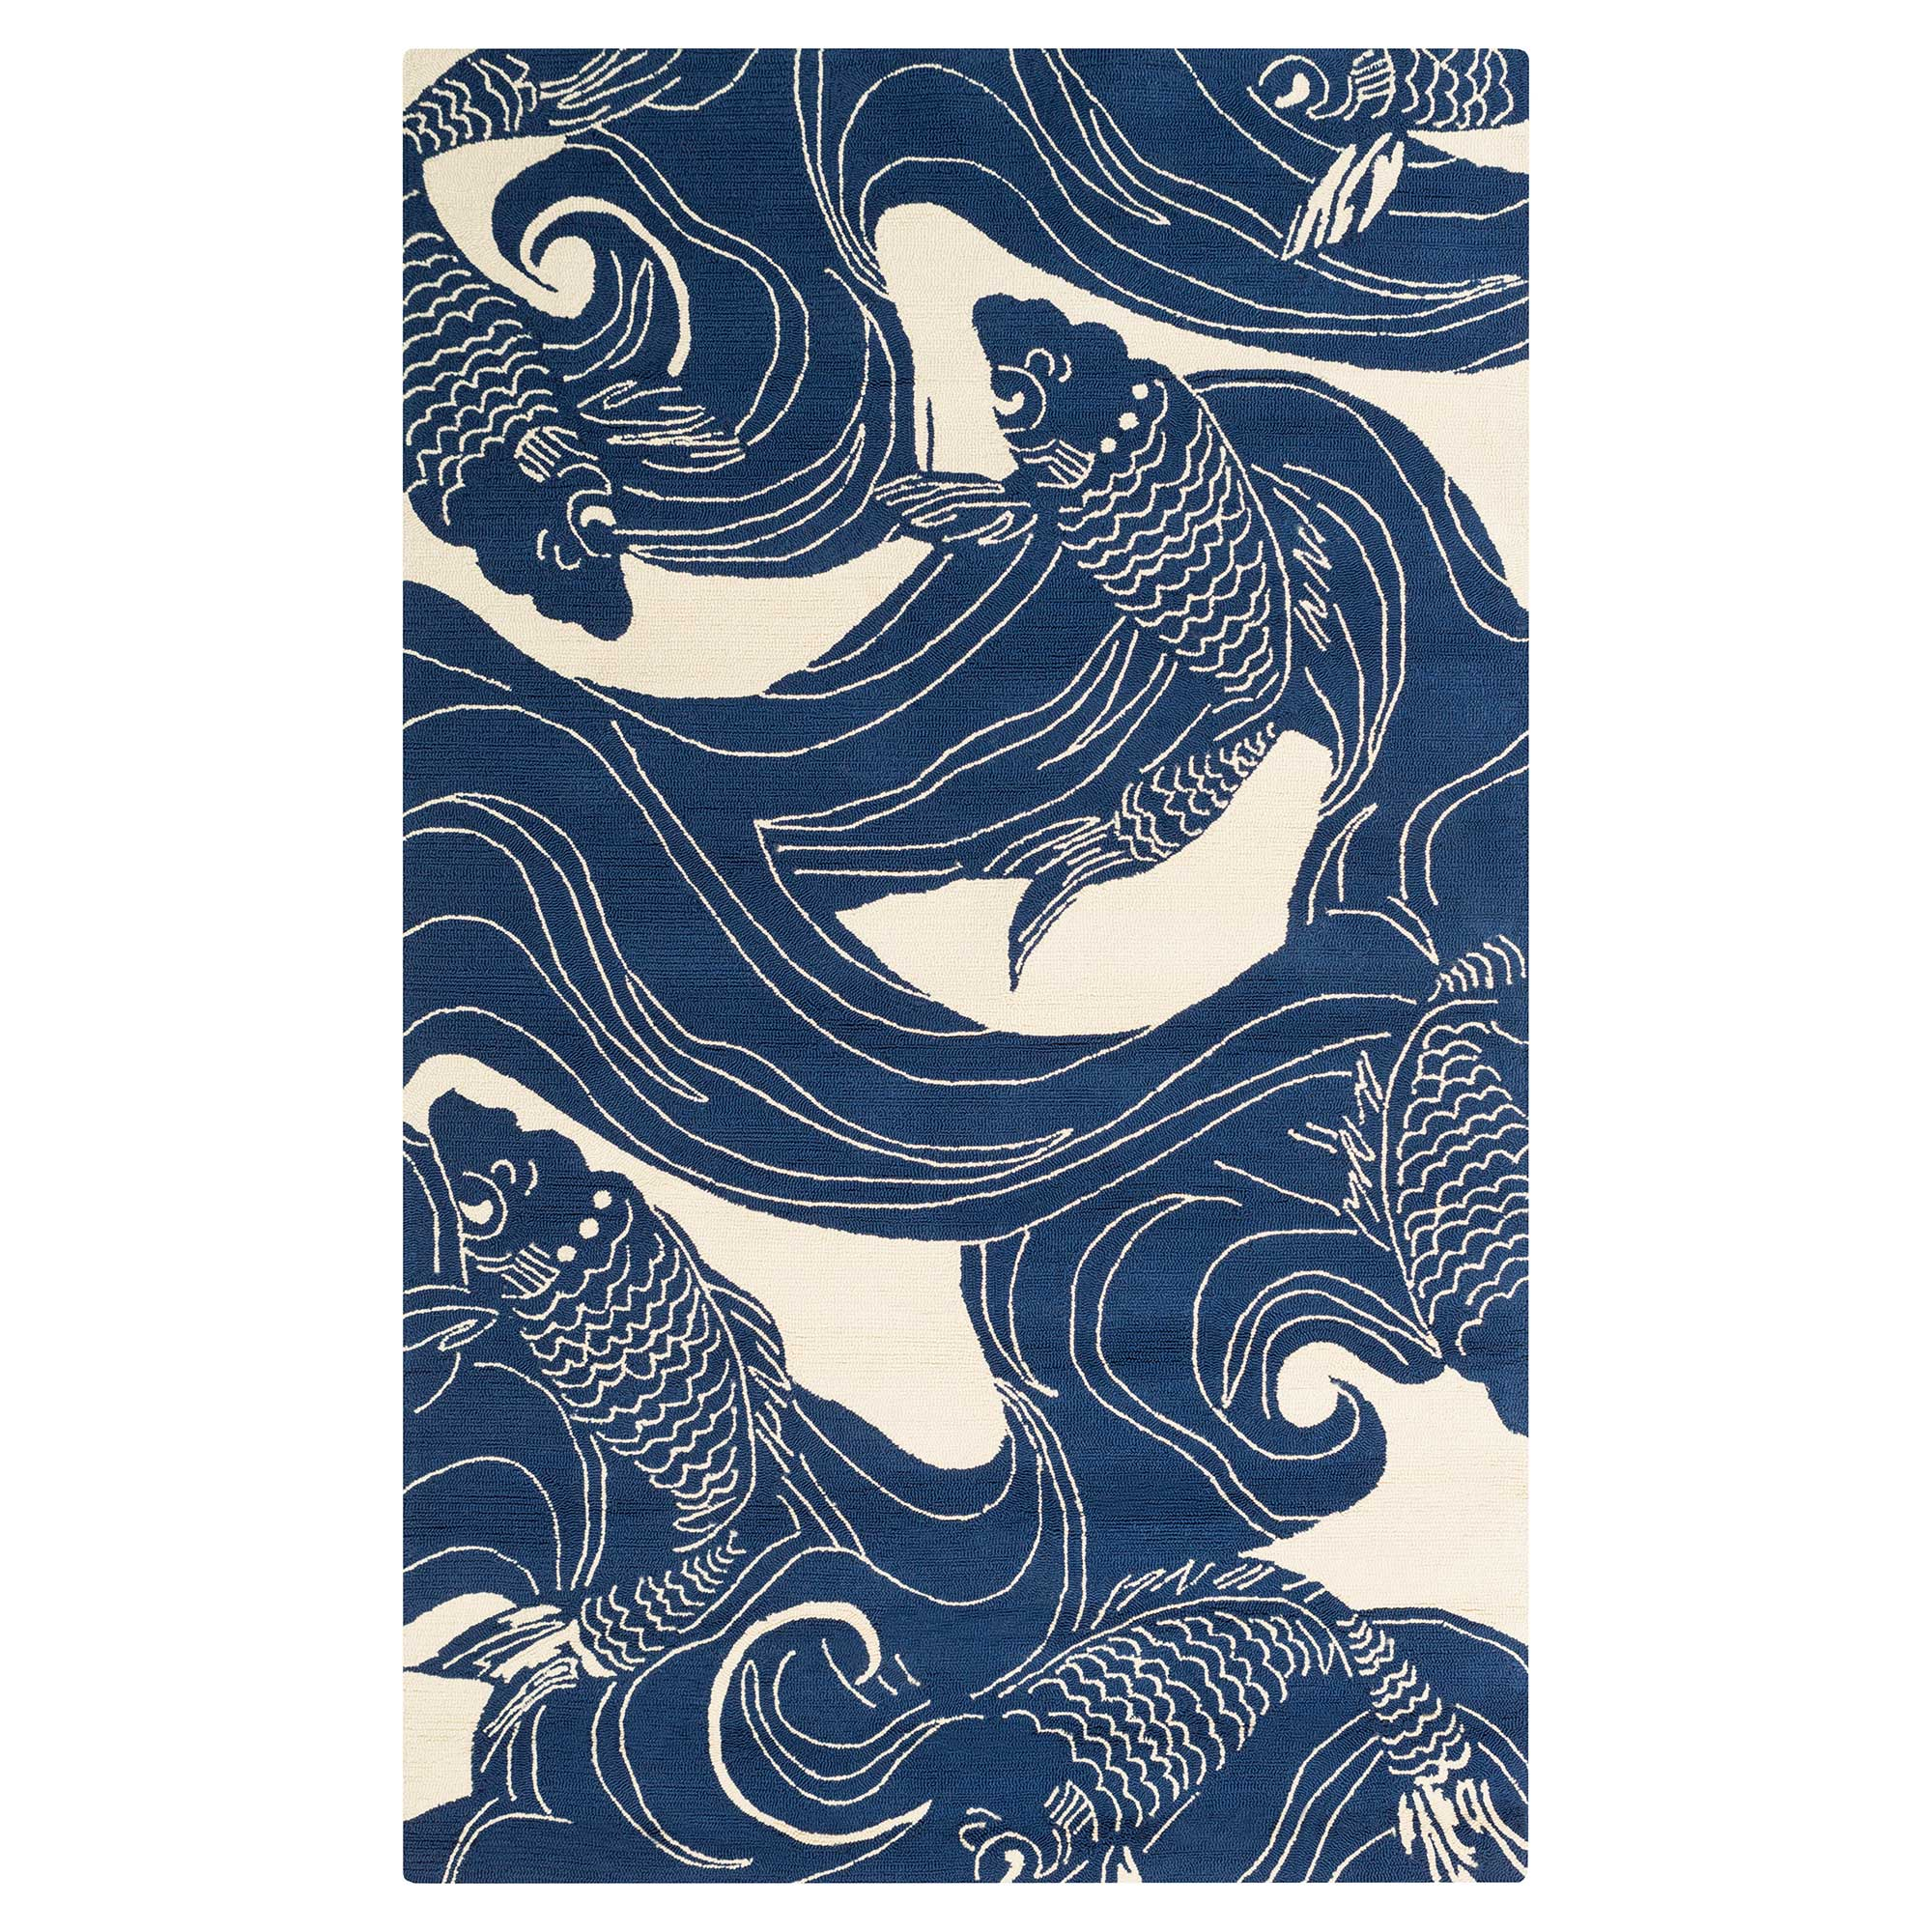 Kana Global Coastal Blue Ocean Koi Outdoor Rug - 9'x12'